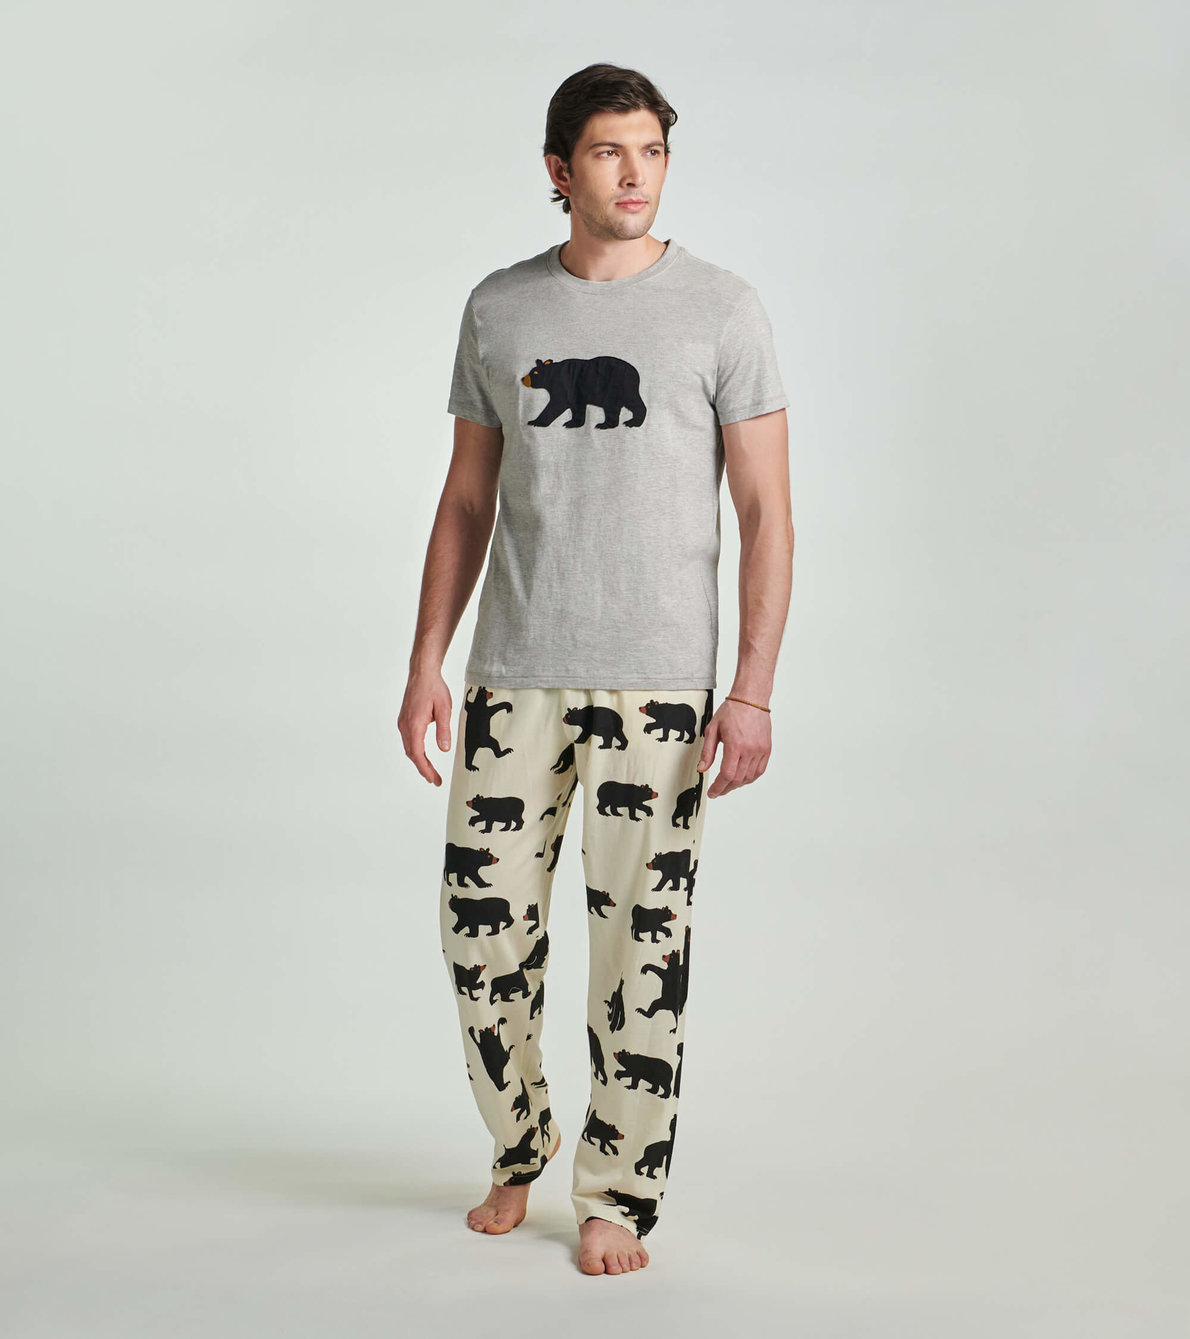 View larger image of Bears Men's Tee and Pants Pajama Separates